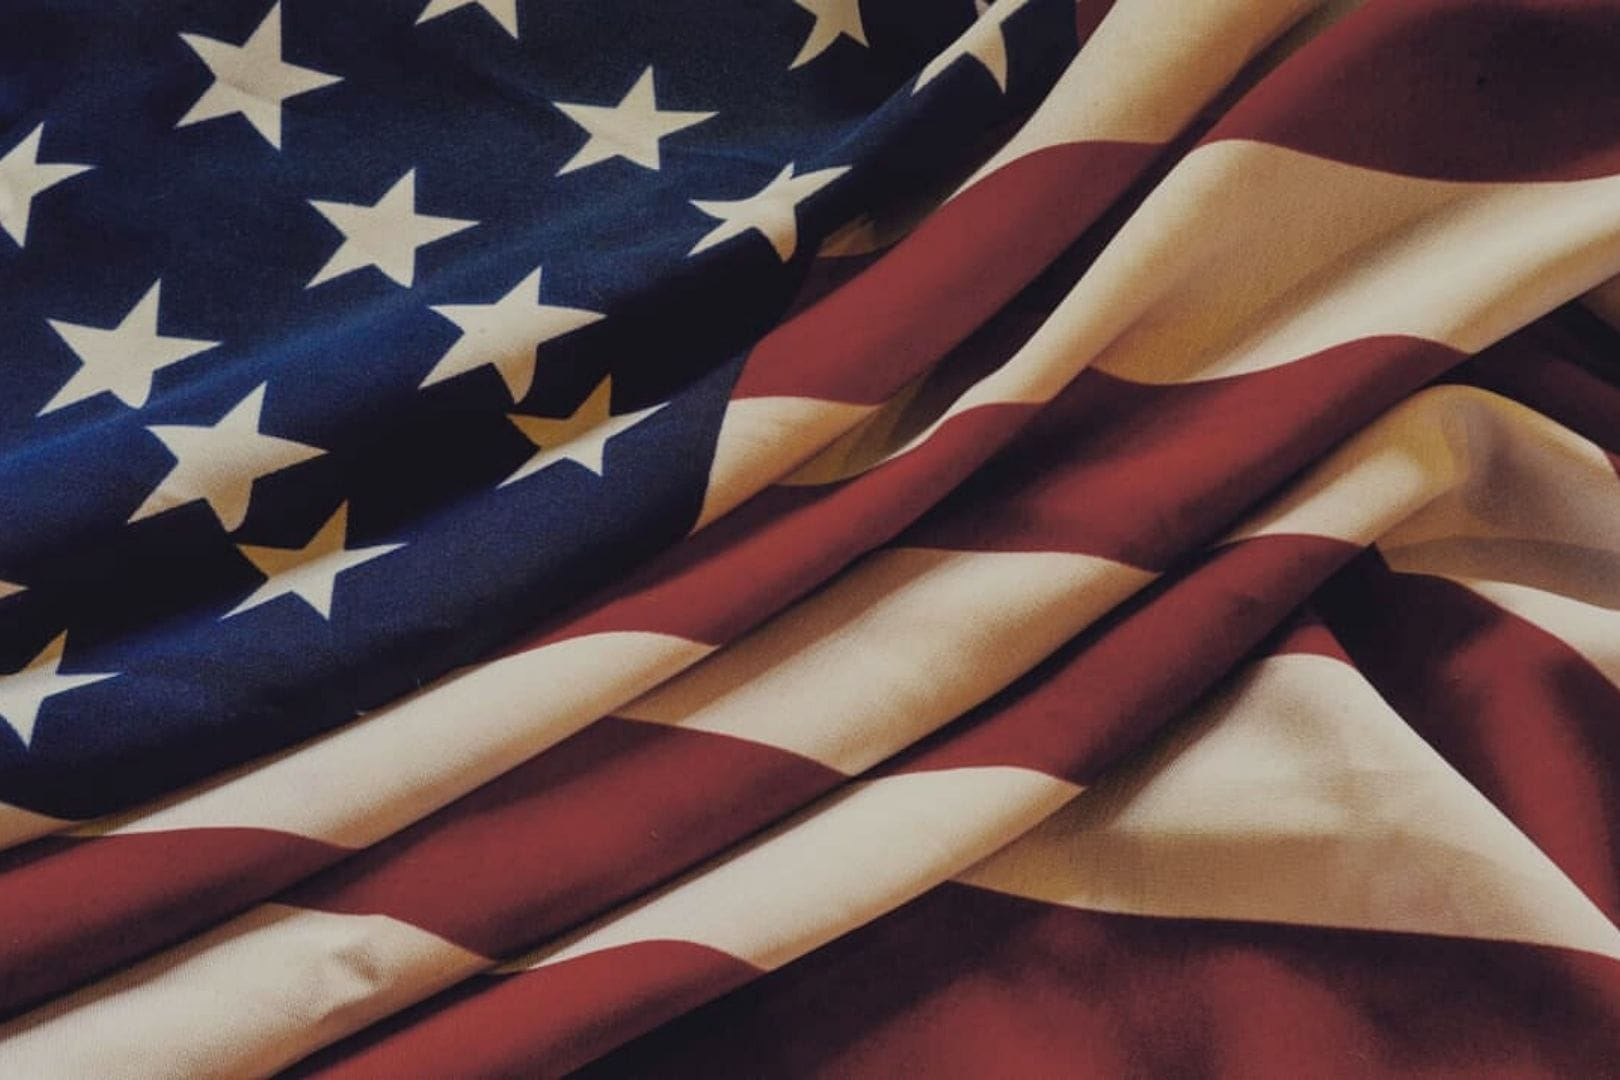 Have a Happy & Safe 4th of July!